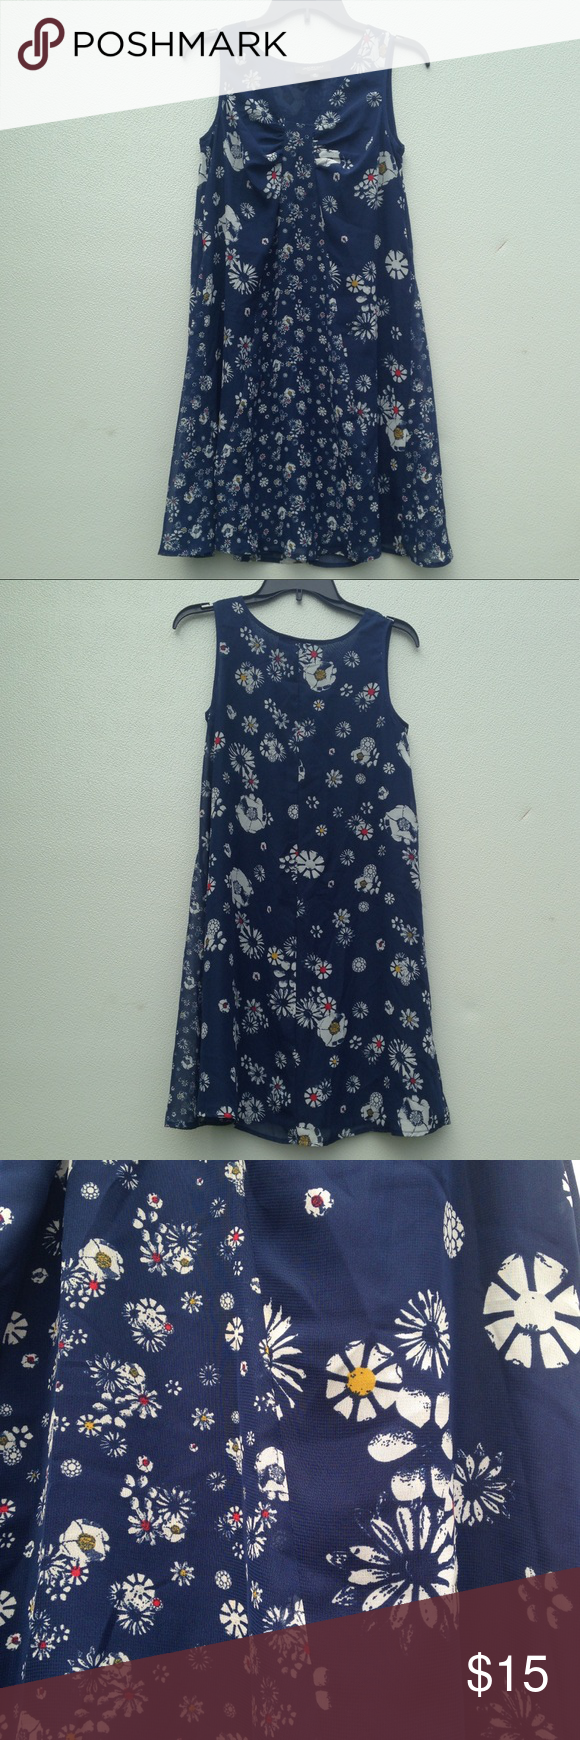 Jason Wu For Target Blue Floral Dress Flowers This Xs Dress Has A Lovely Retro Floral Print The Belt That Came With It Floral Blue Dress Floral Dress Dresses [ 1740 x 580 Pixel ]